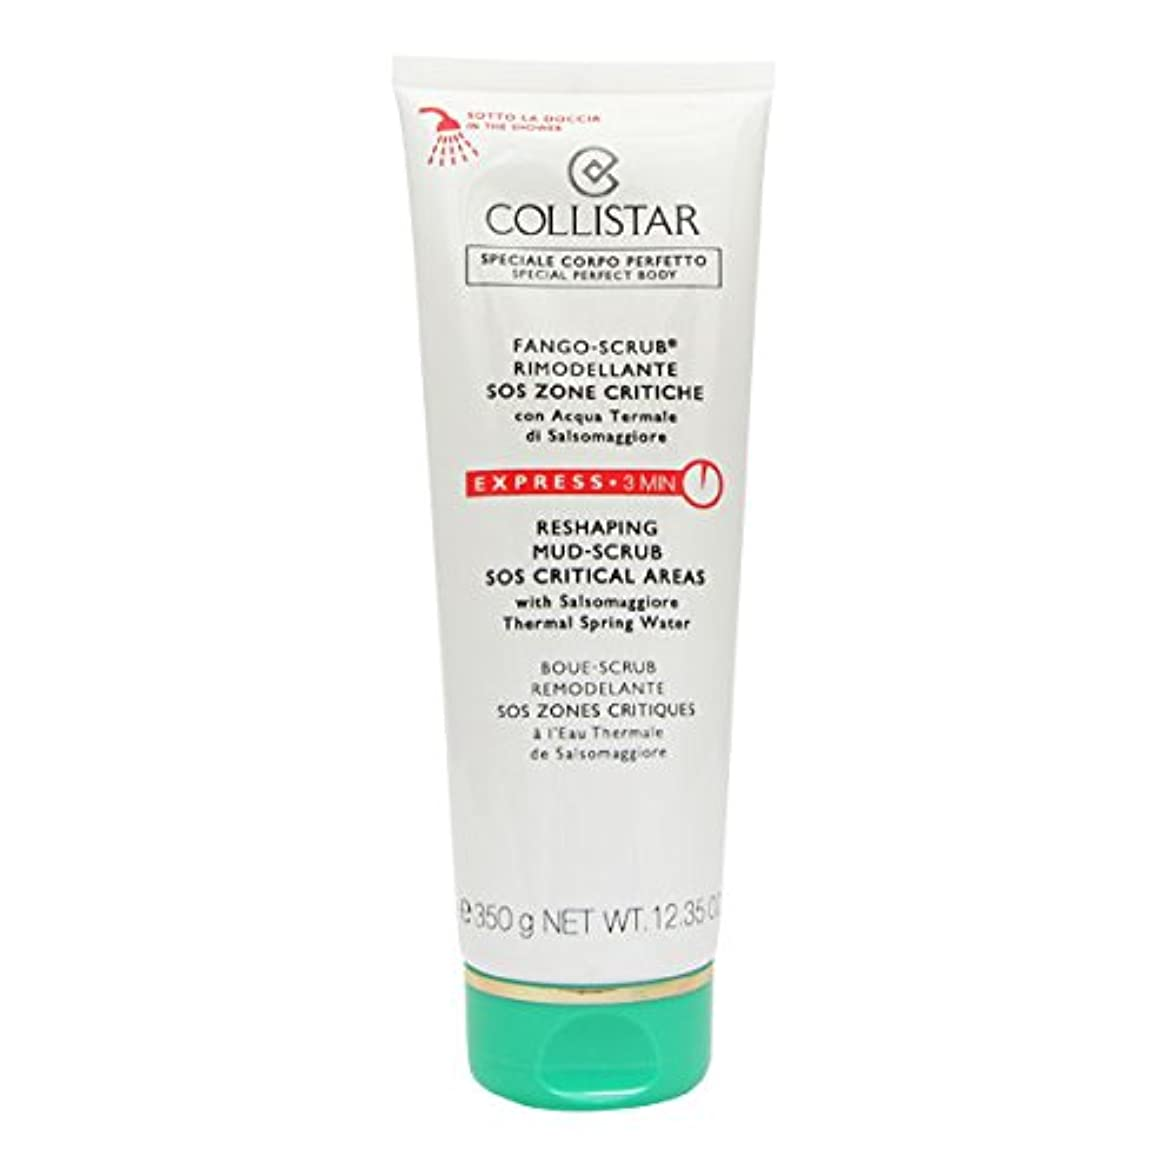 ホバート湿気の多い性格Collistar Reshaping Mud-scrub Sos Critical Areas 350g [並行輸入品]